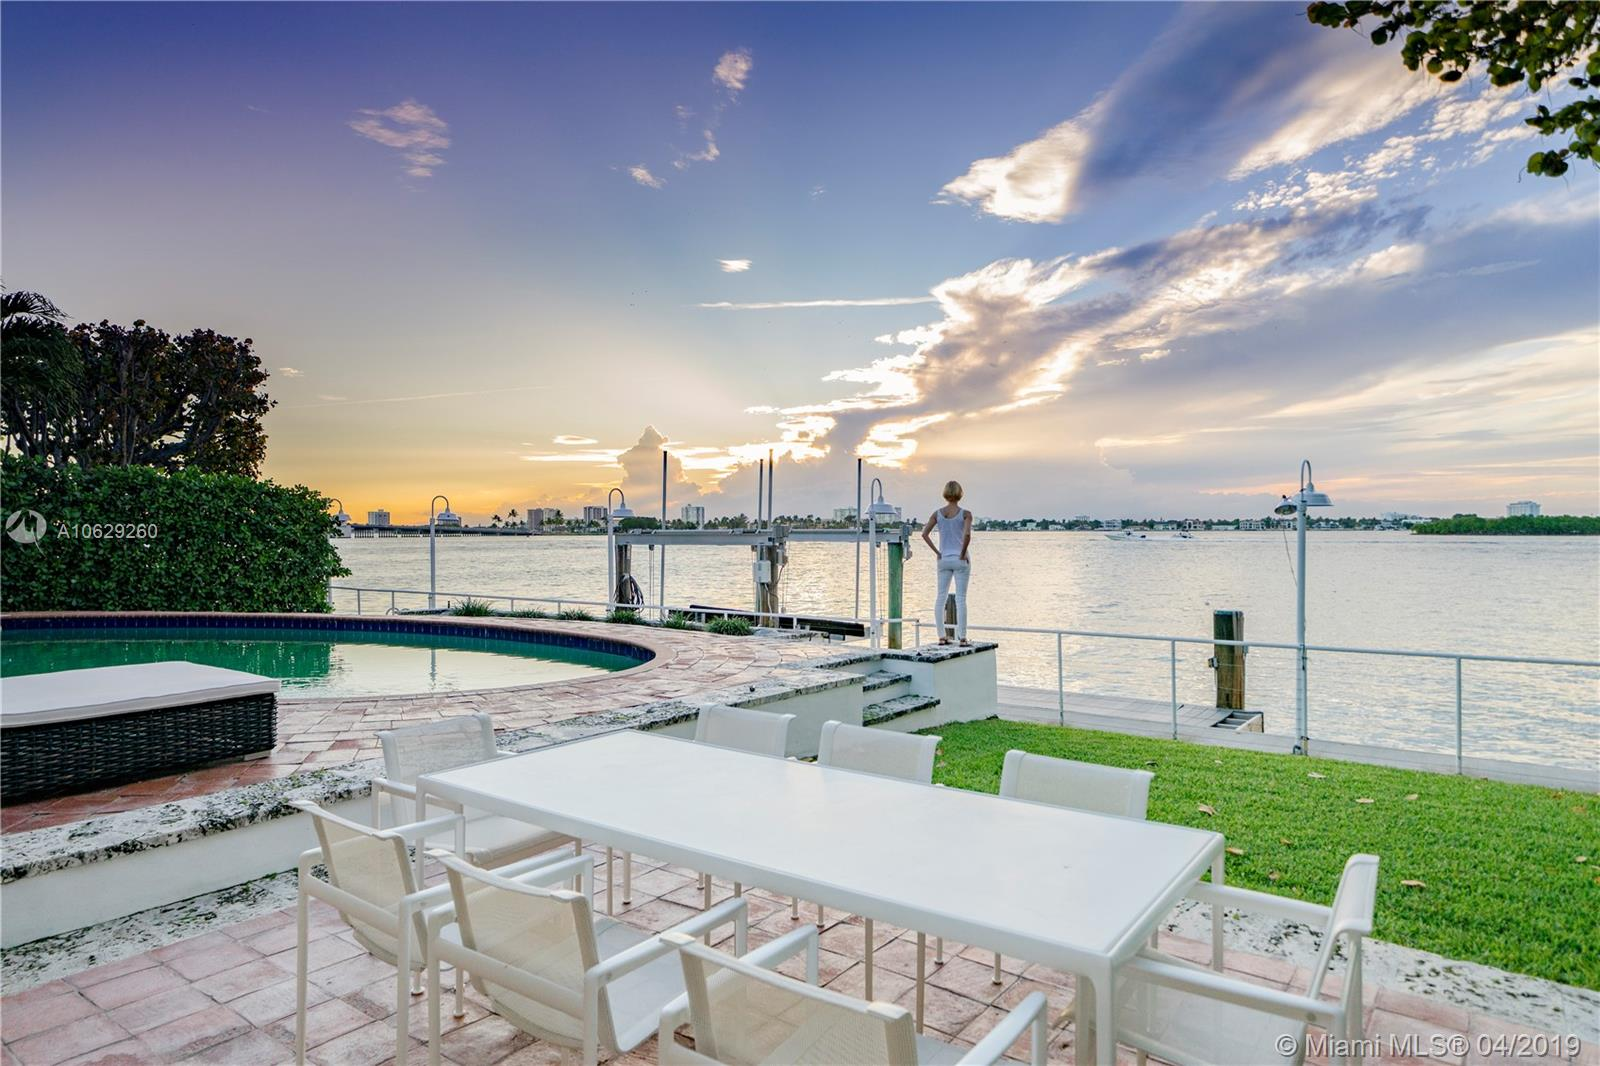 Дом в США по адресу 10010 Broadview Dr, Bay Harbor Islands, FL 33154